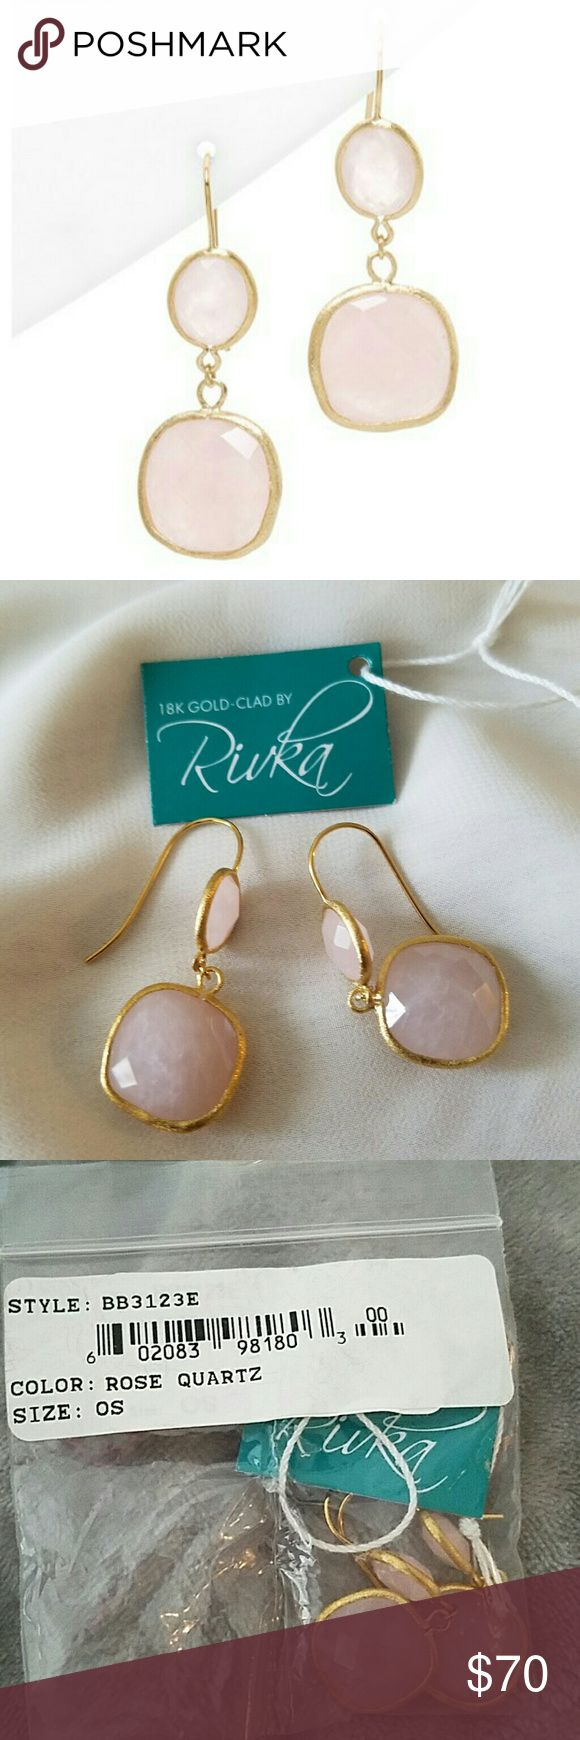 """Rivka Friedman 18K clad Rose Quartz Earrings Rivka Friedman Designed By Rivka Friedman Drop Earrings 18-Karat Yellow Gold Clad Faceted Oval And Pillow-Cut Rose Quartz Gemstones Measure 10-15mm Approximate 1.5in Drop Shepard's Hook Backs """"""""It Is Customary To Treat Most Gemstones To Achieve Enhanced Color And Durability. Some Of These Treatments May Not Be Permanent, And May Require Special Care""""""""""""1 Imported Rivka Friedman Jewelry Earrings"""